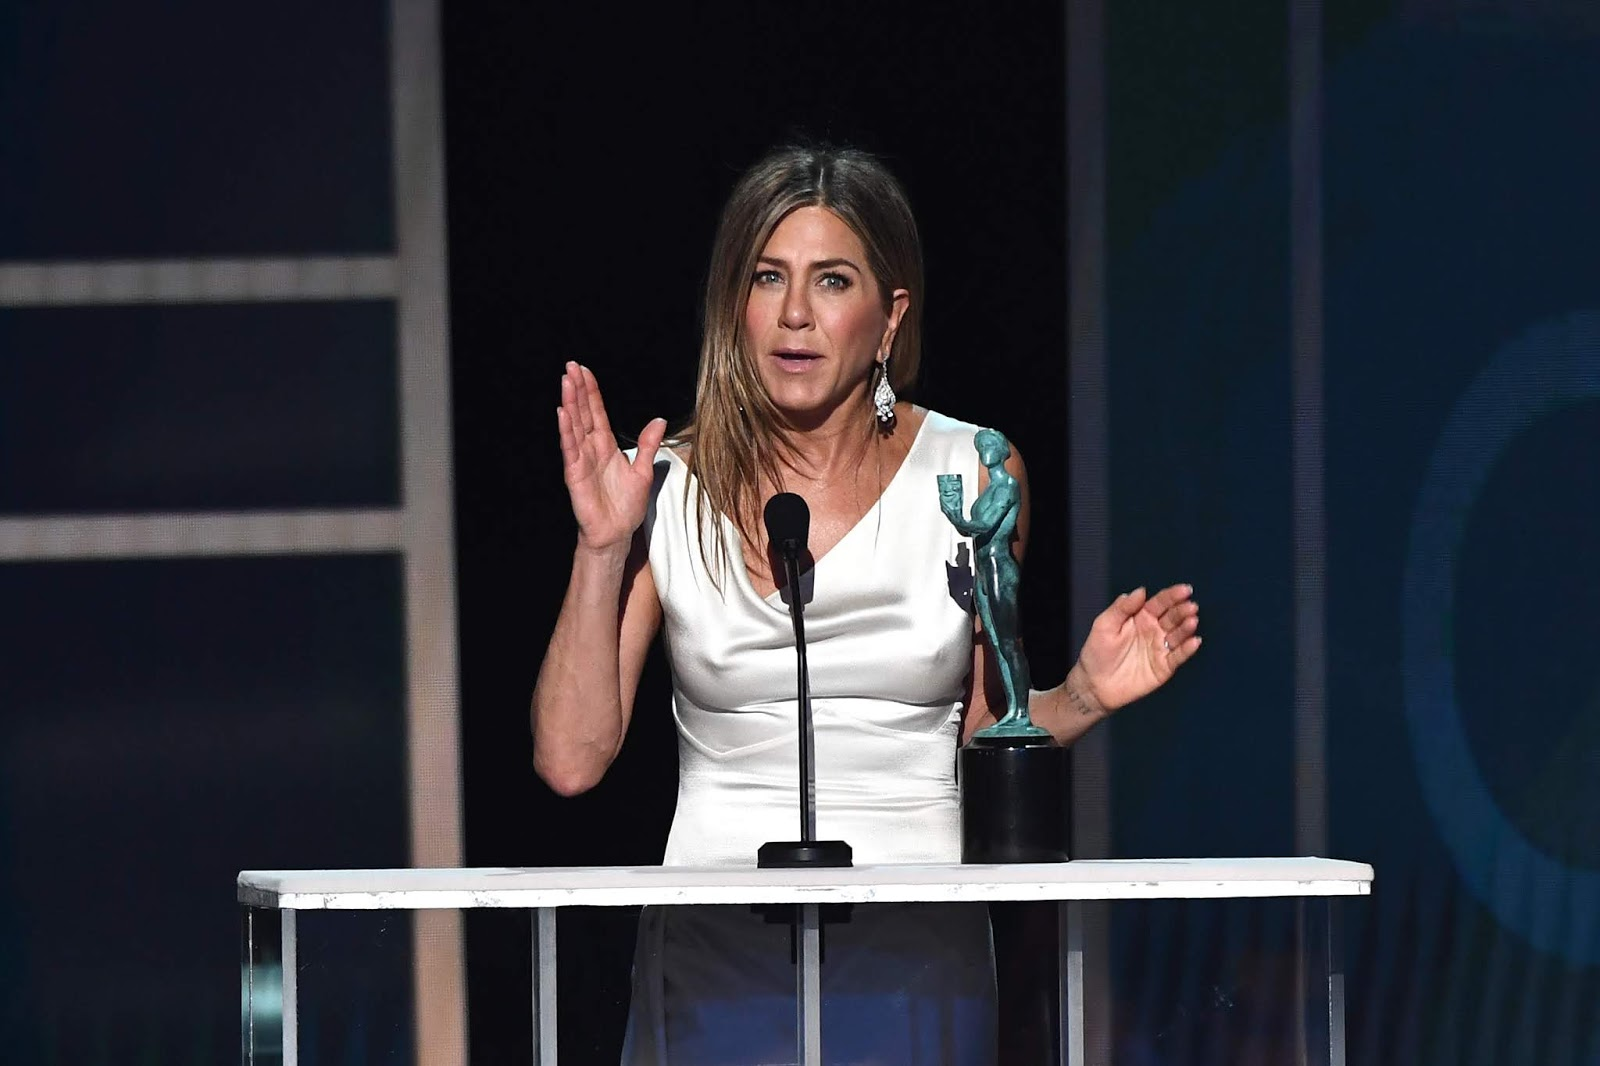 Jennifer Aniston won her first SAG Award in nearly 25 years